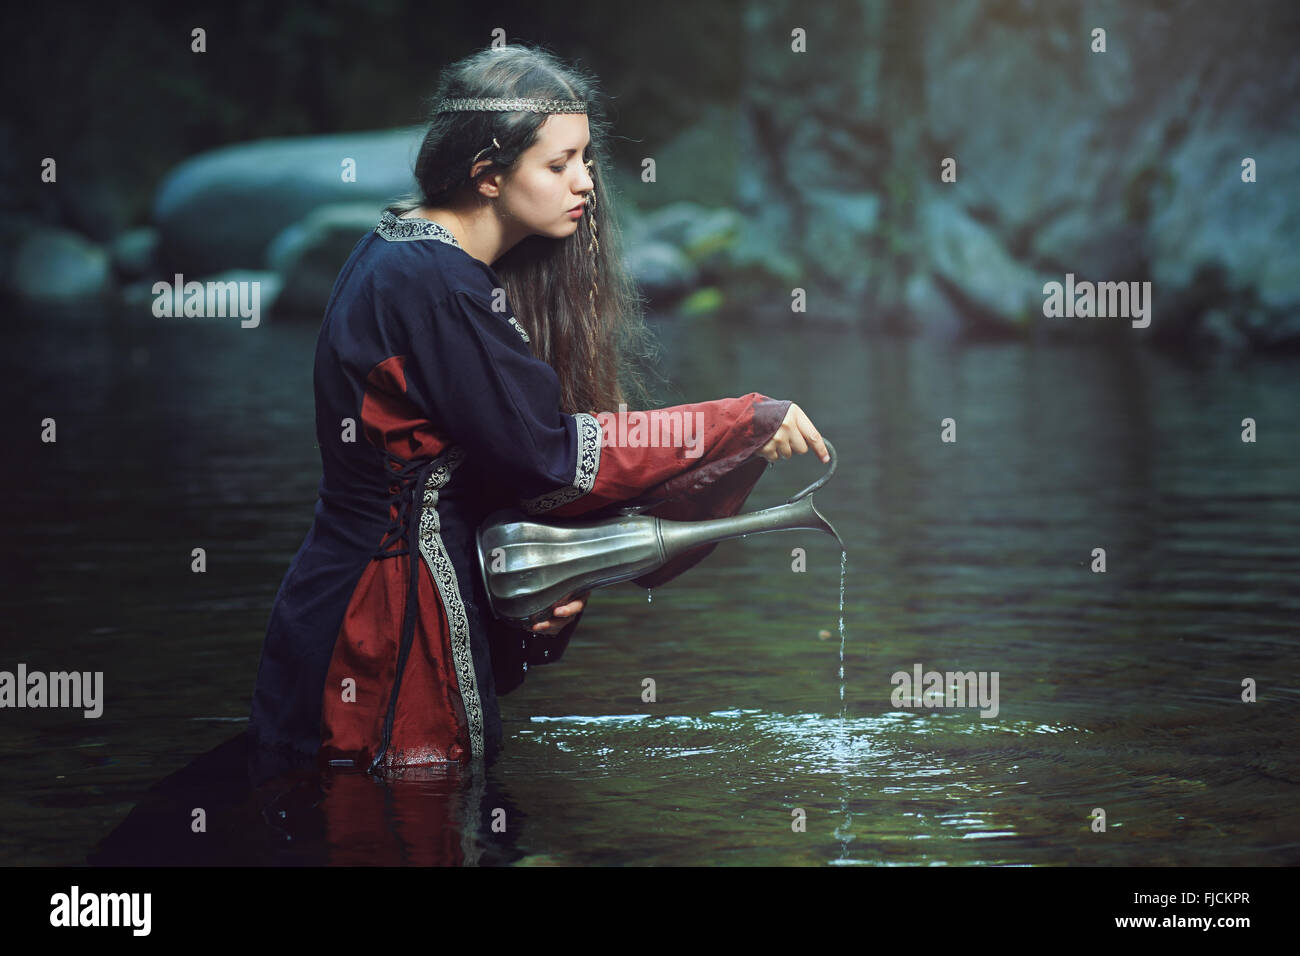 Ancient purification rite of a medieval woman in dark stream - Stock Image